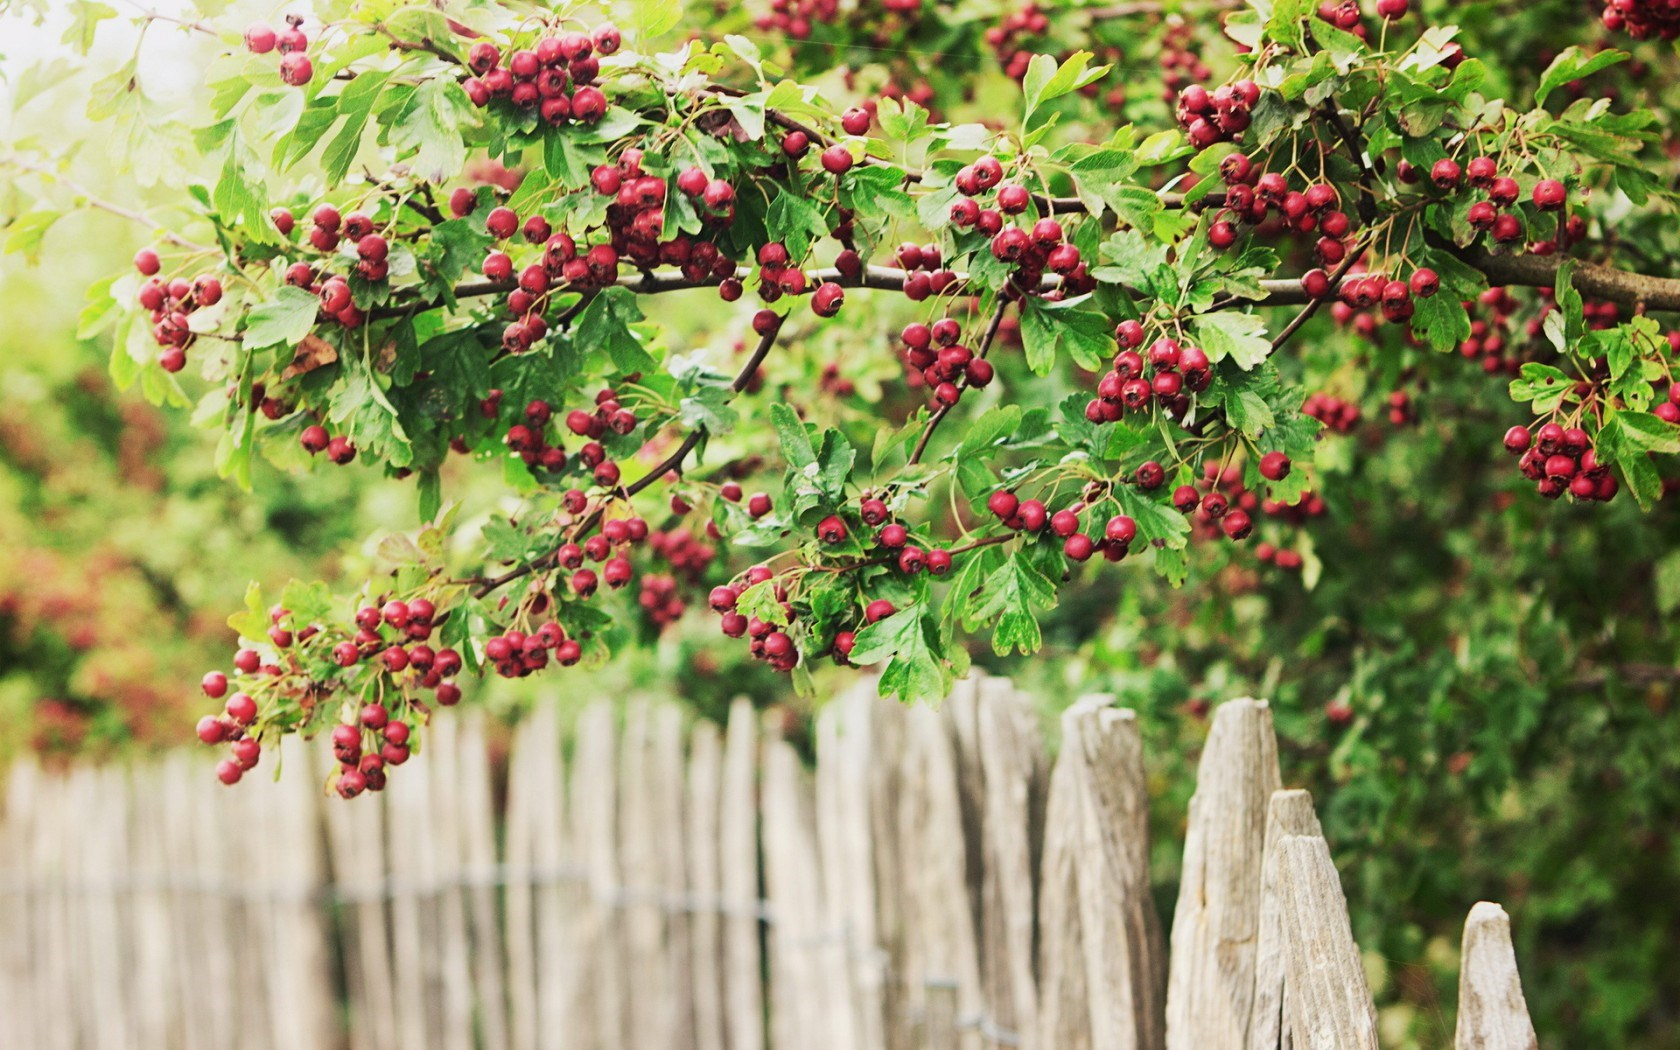 Berries Nature Fence